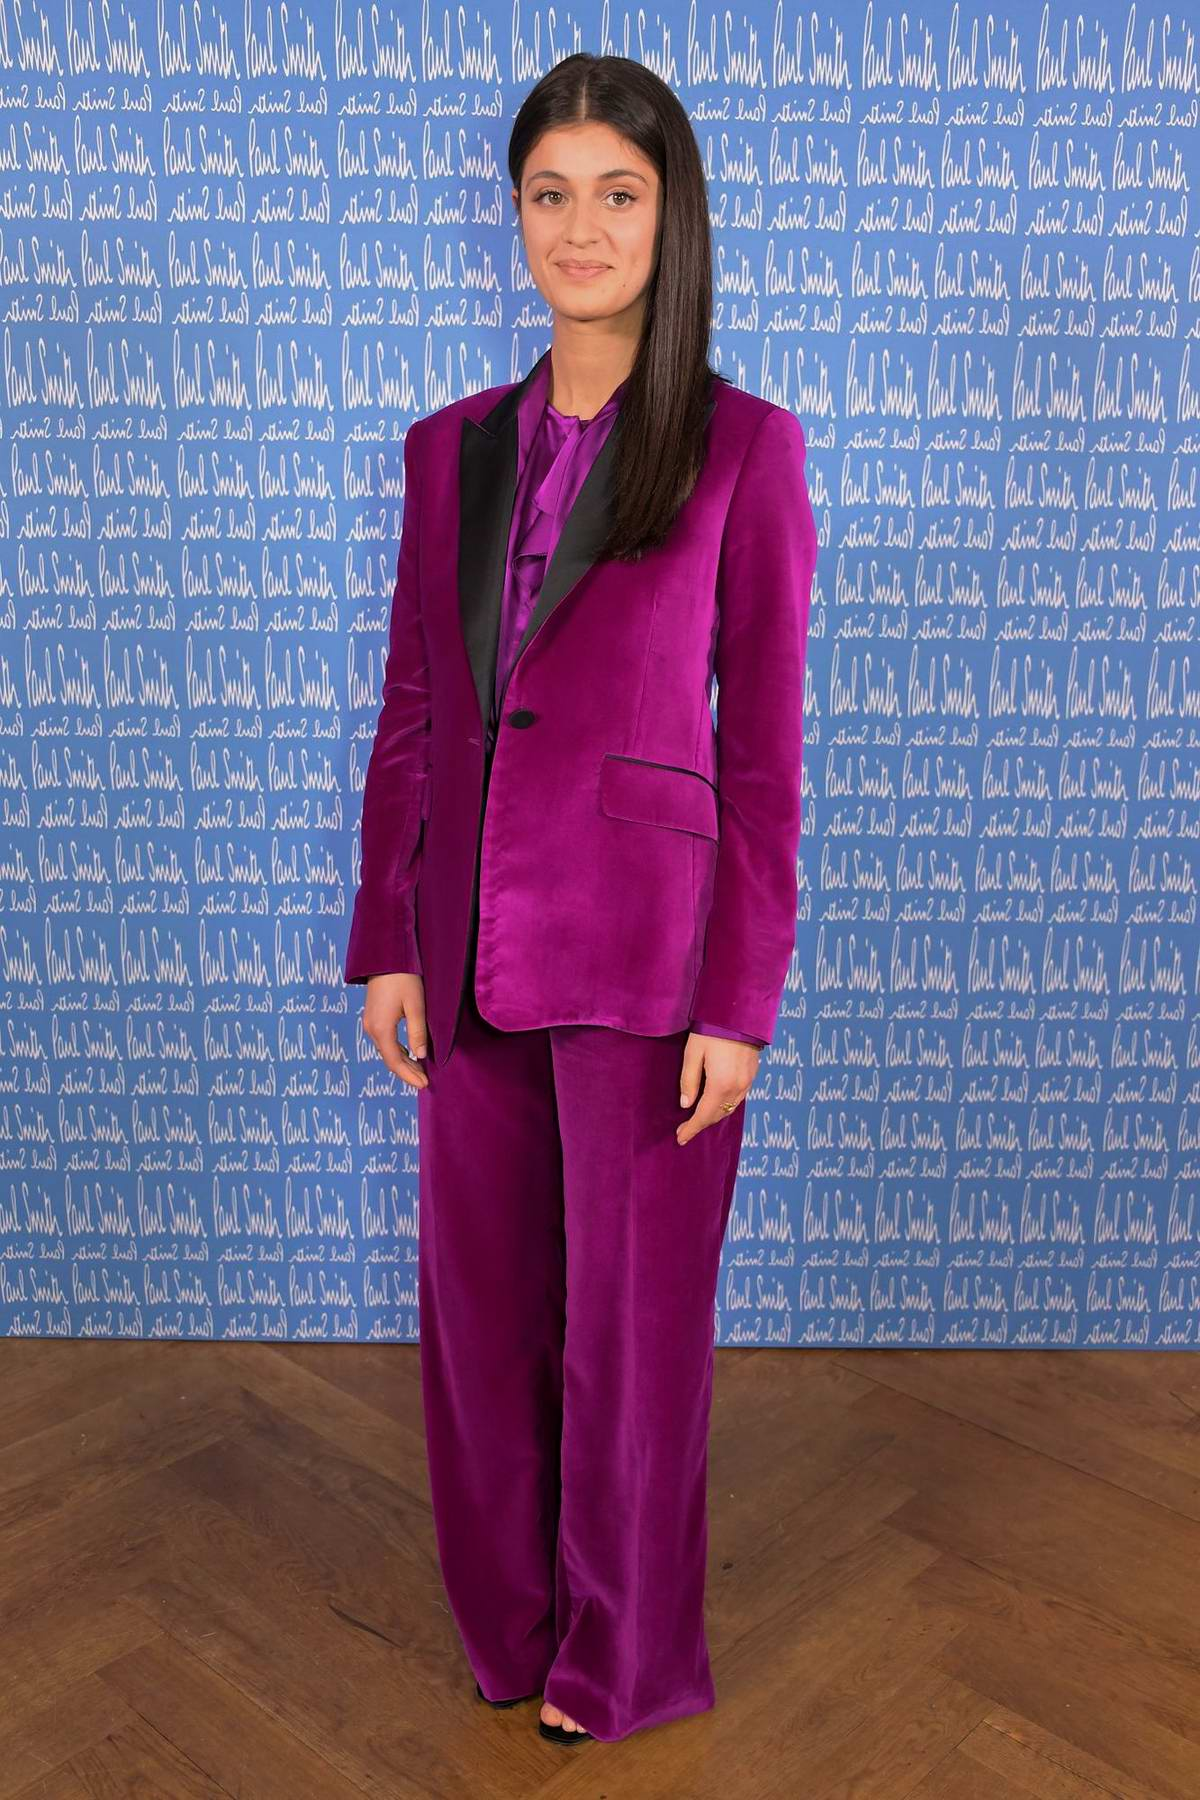 Anya Chalotra attends Paul Smith AW20 50th Anniversary Show during Paris Fashion Week in Paris, France